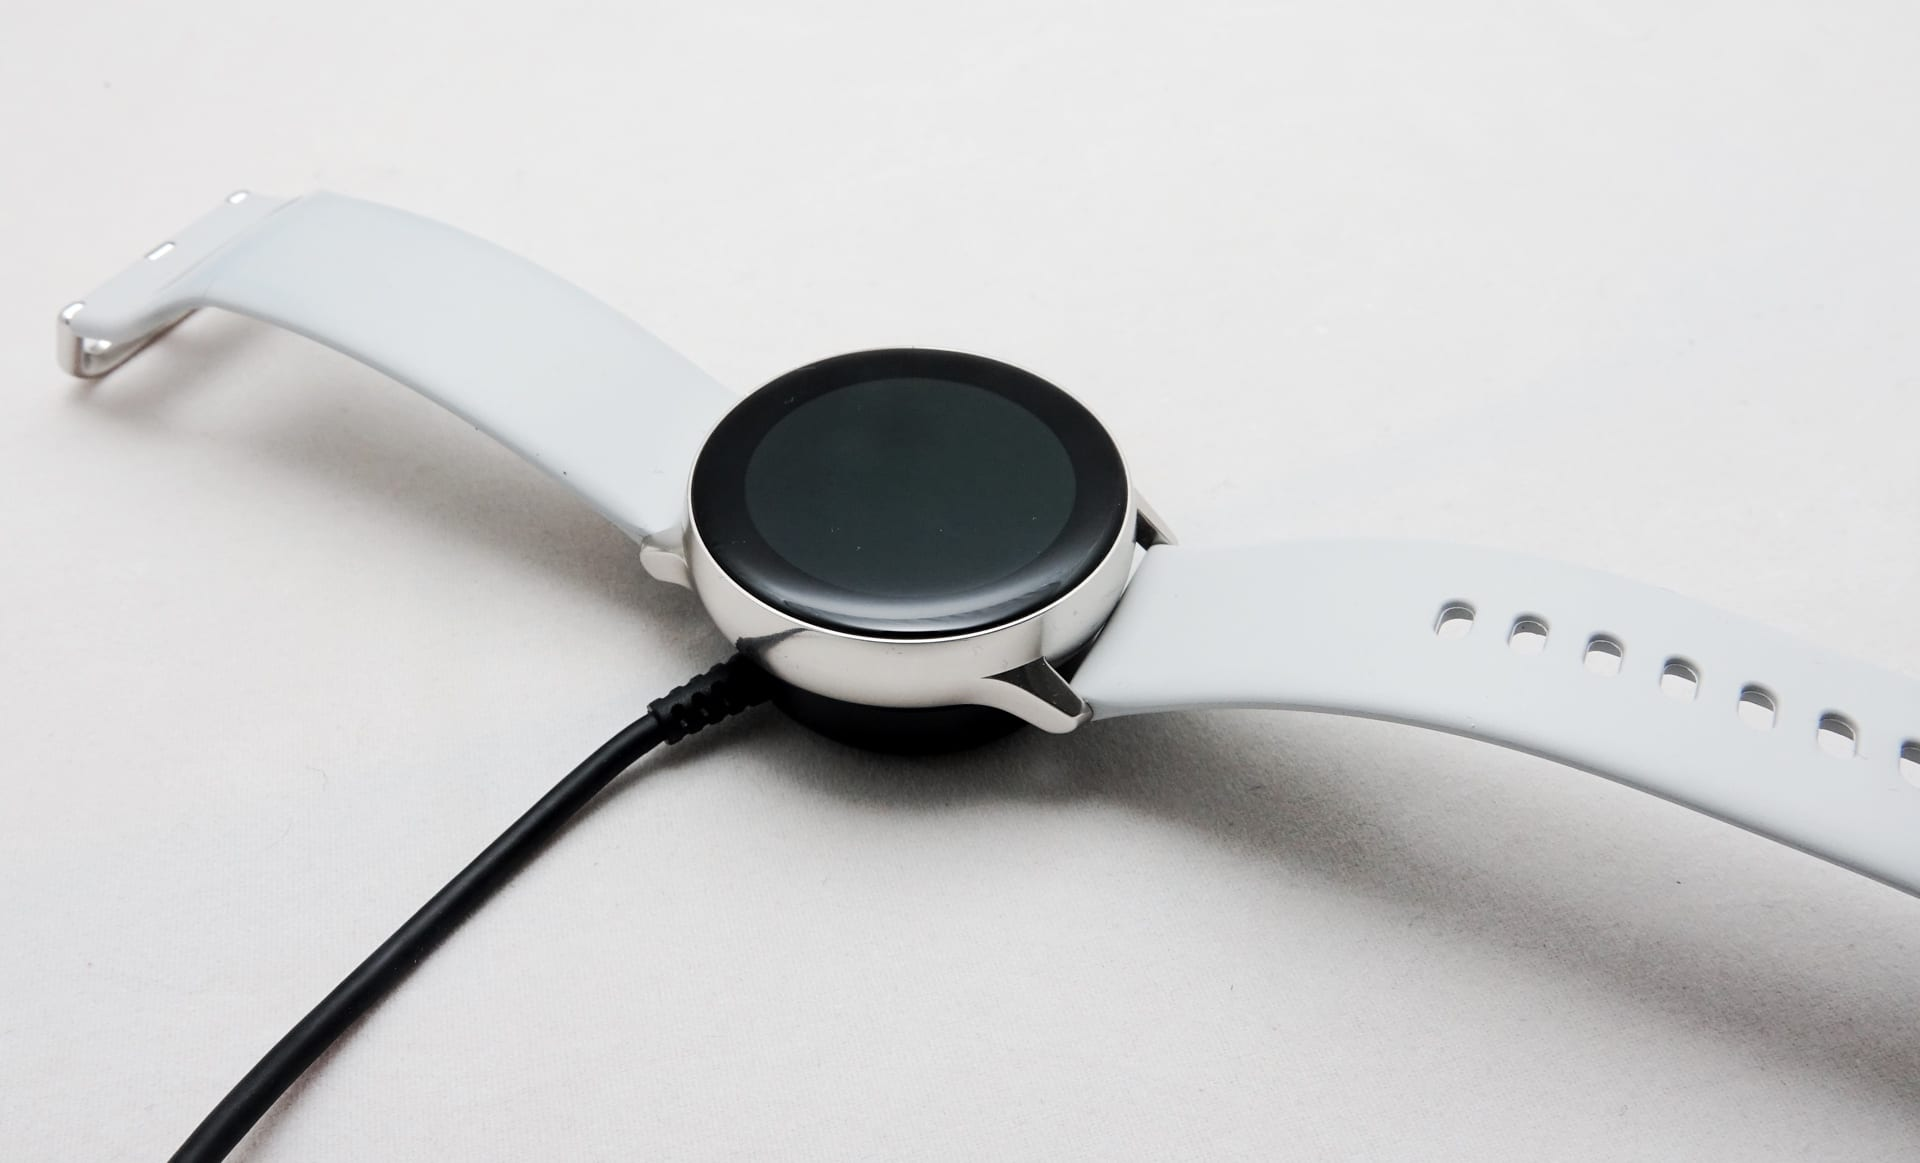 Review: Samsung Galaxy Watch Active (SM-R500) – Pickr